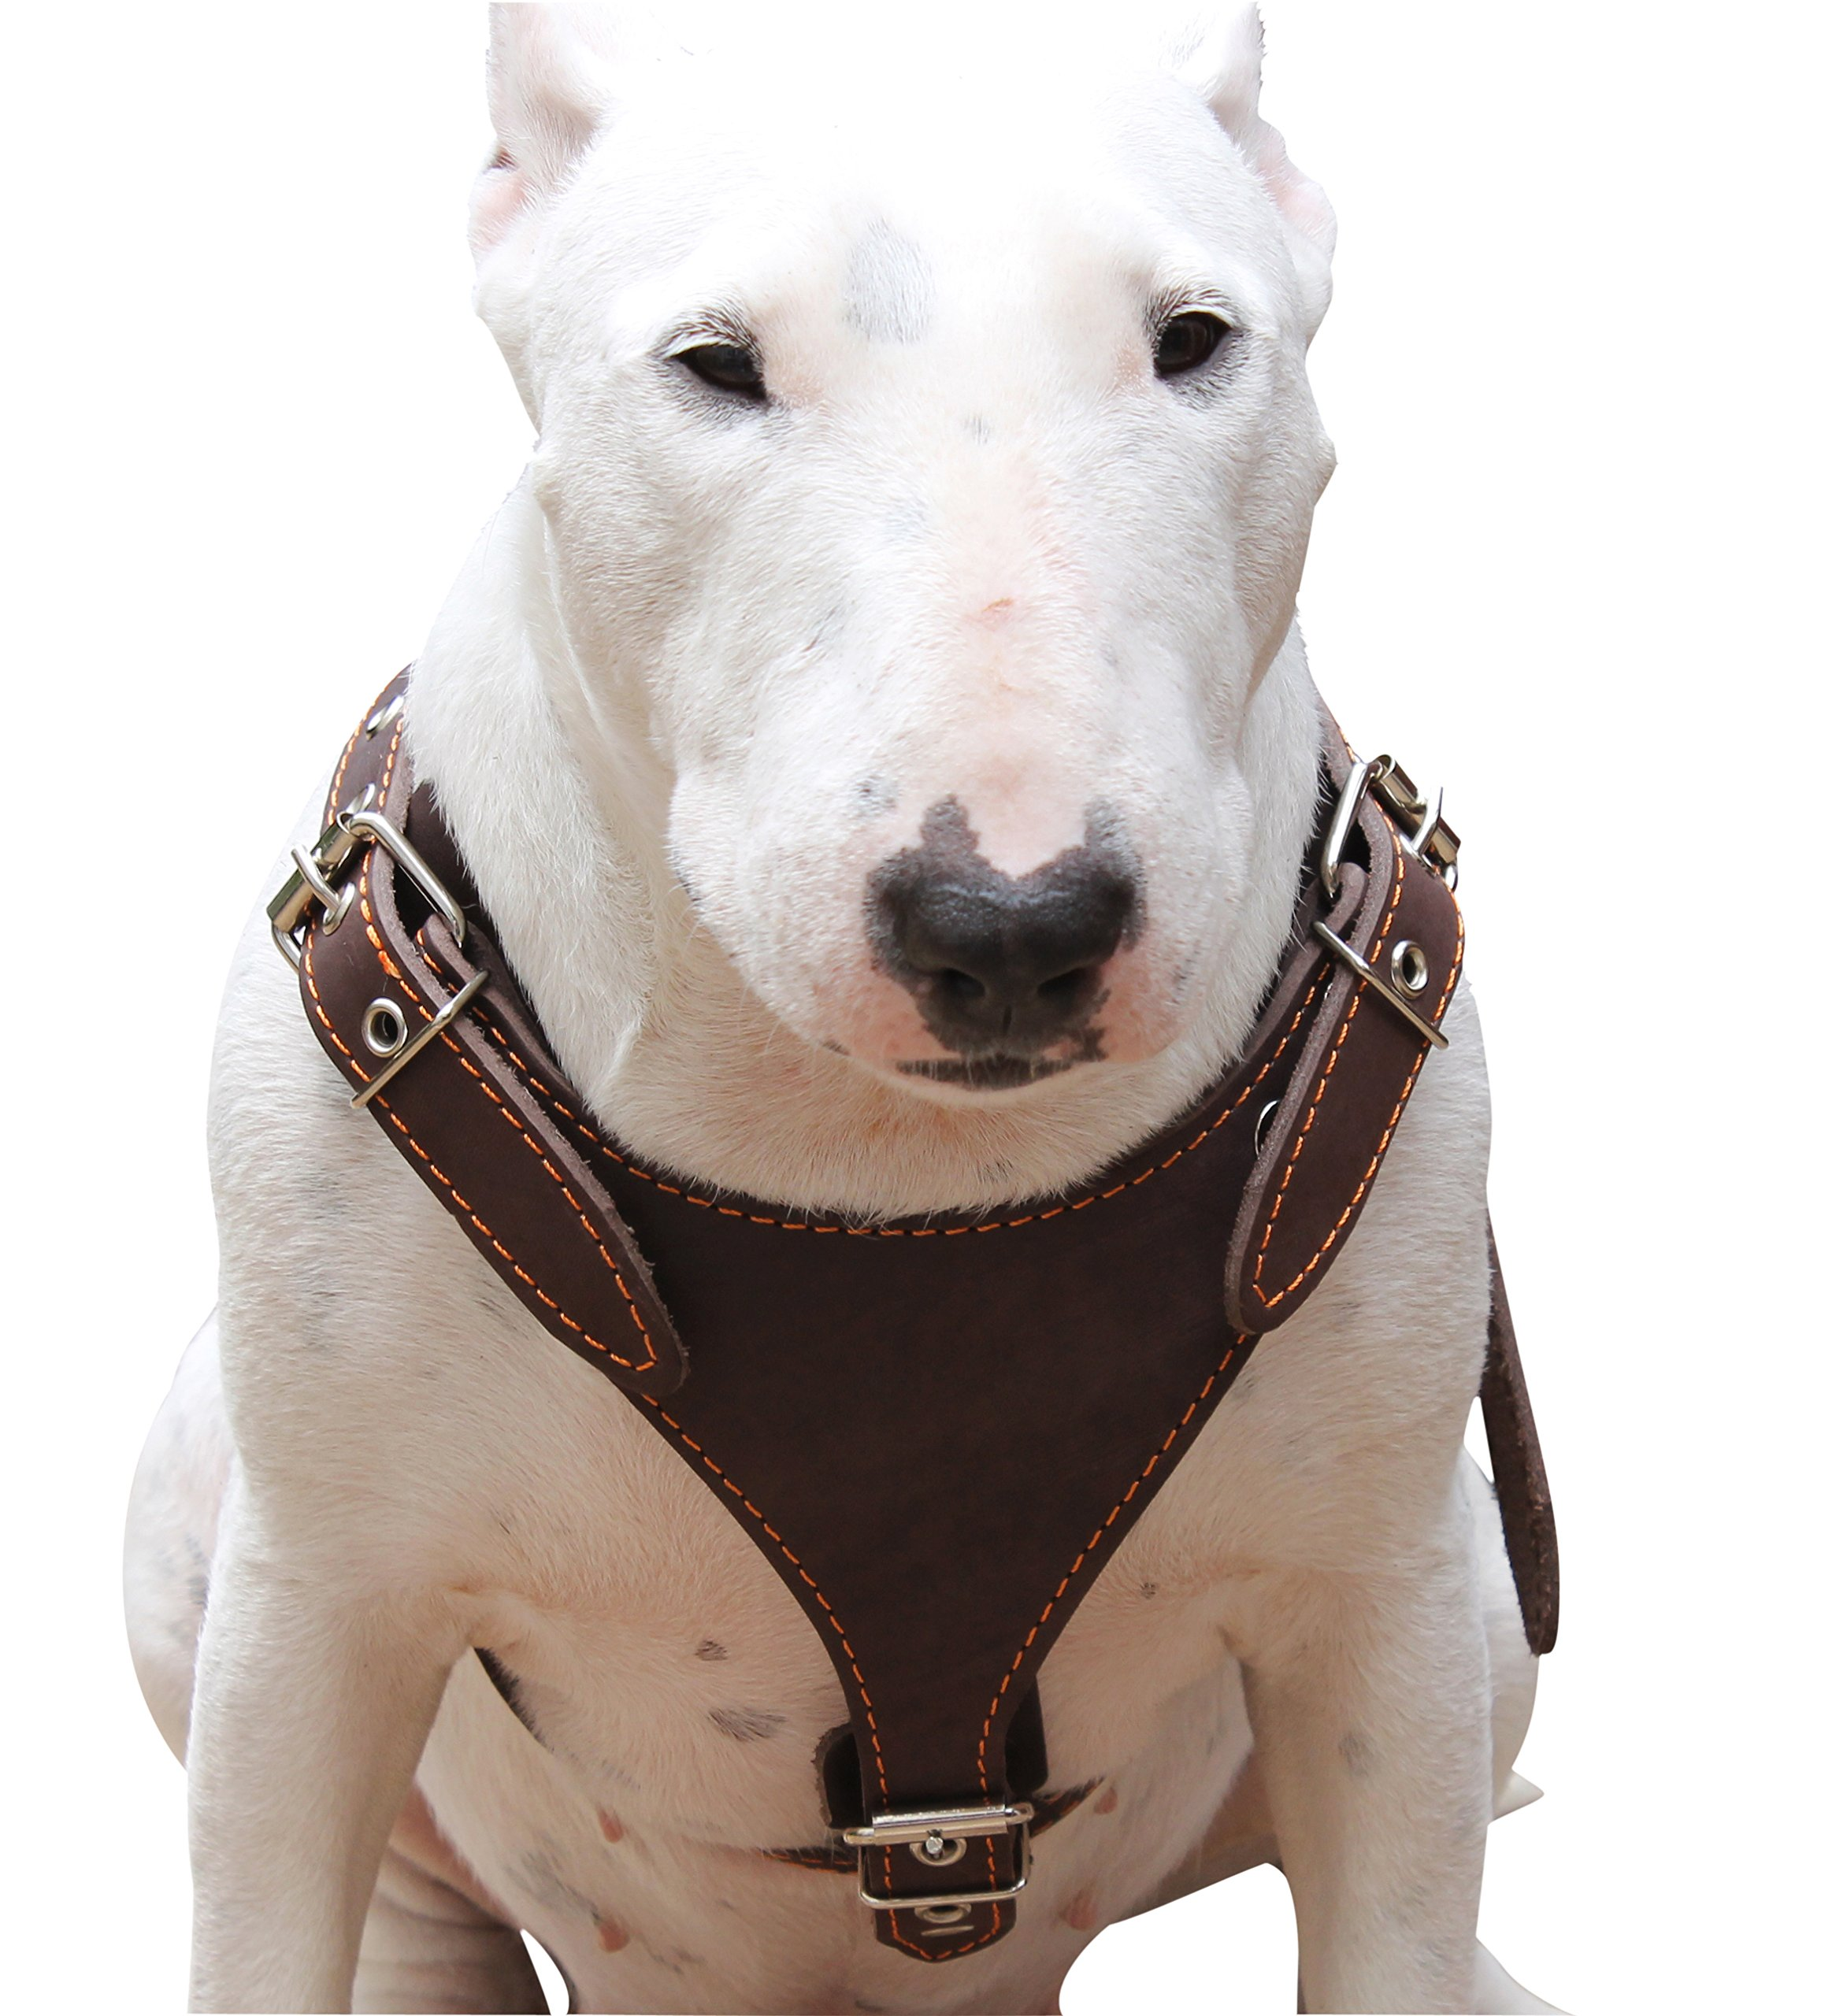 Brown Genuine Leather Dog Harness, Medium. 25''-30'' Chest, 1'' Wide Adjustable Straps